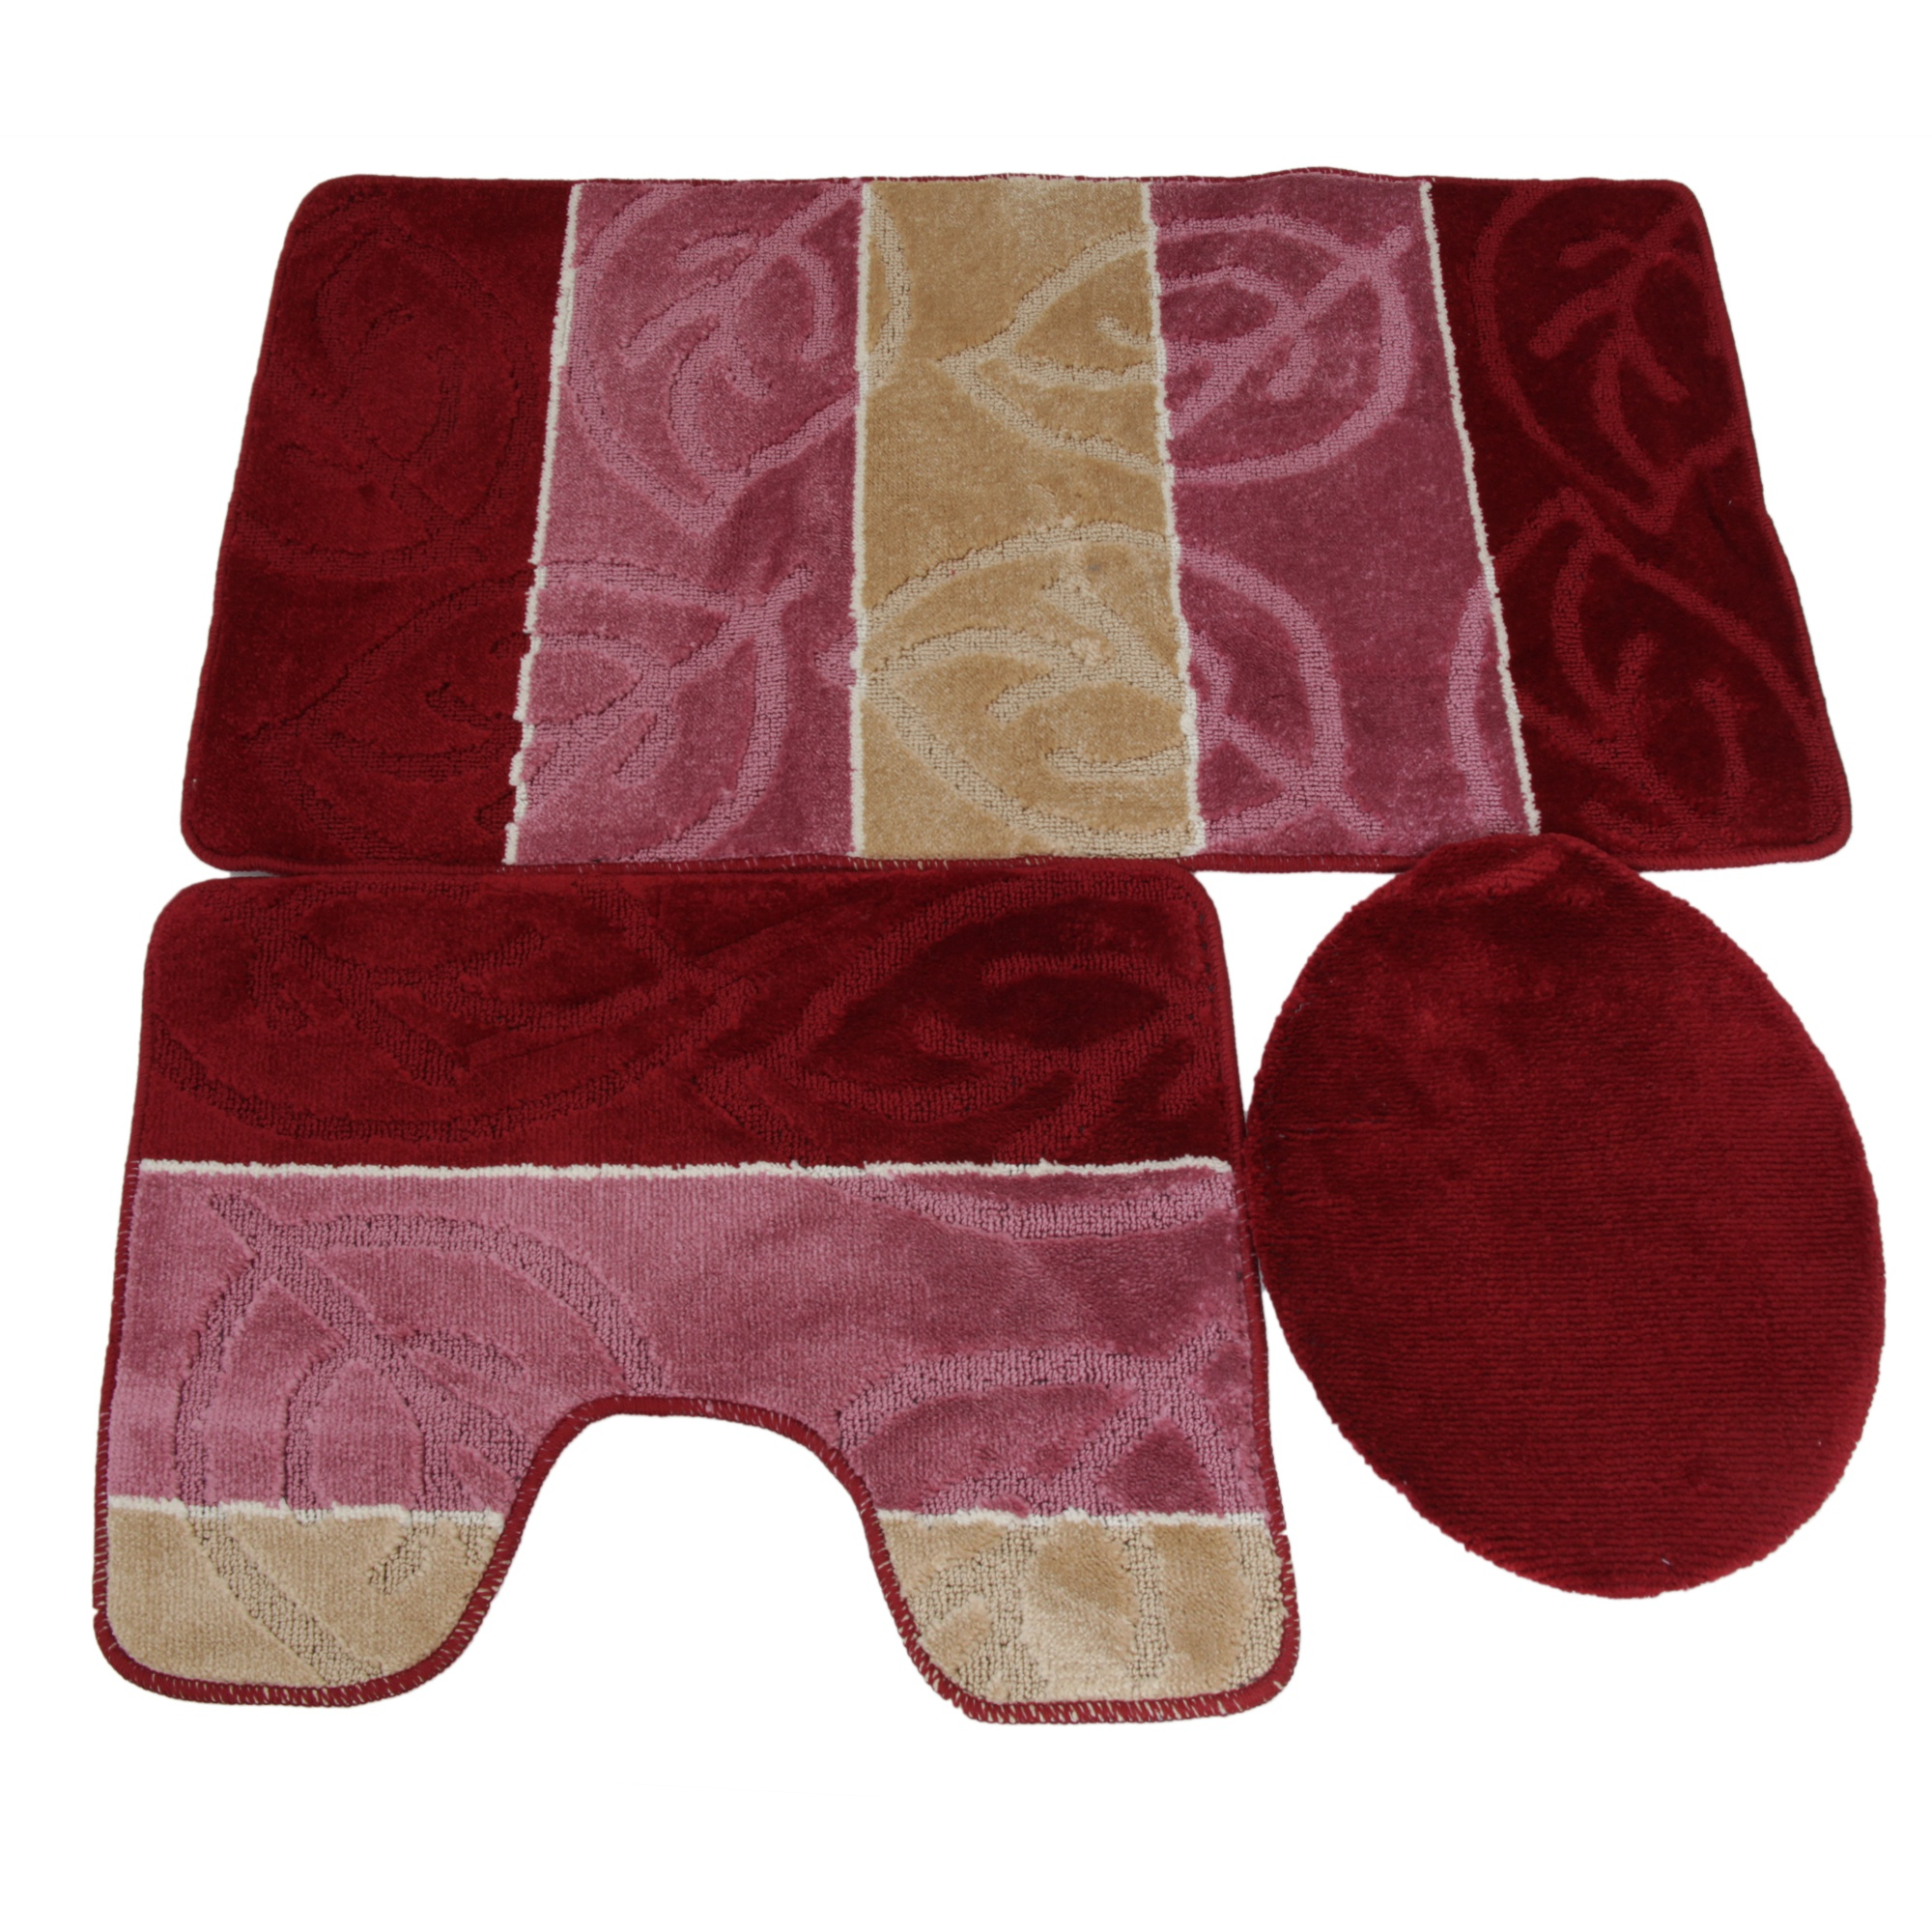 3 piece leaf design bath pedestal bathroom mat set with for 3 piece bathroom designs